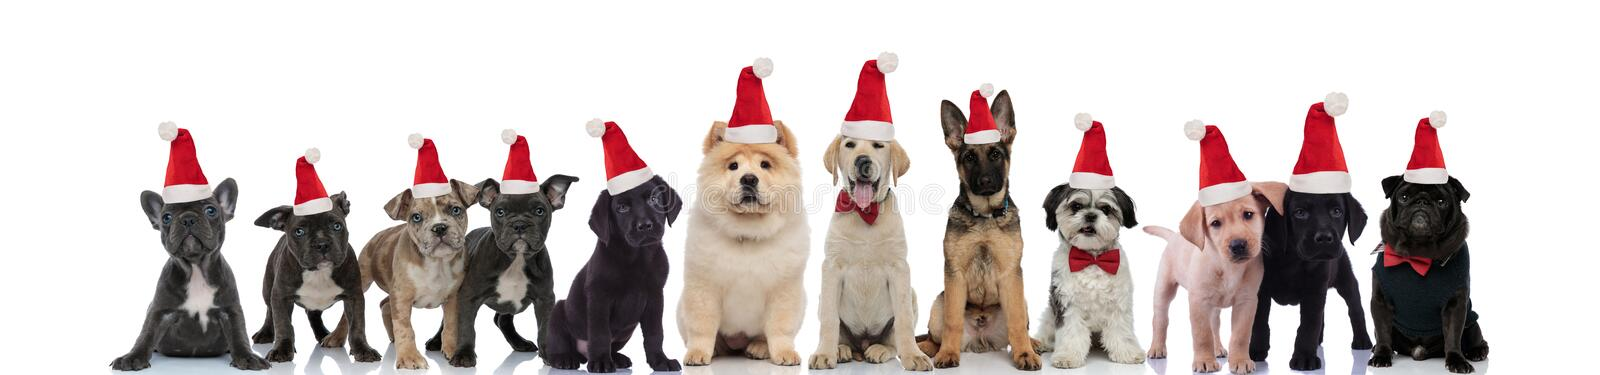 Cute santa claus dogs standing in line together. On white background stock images